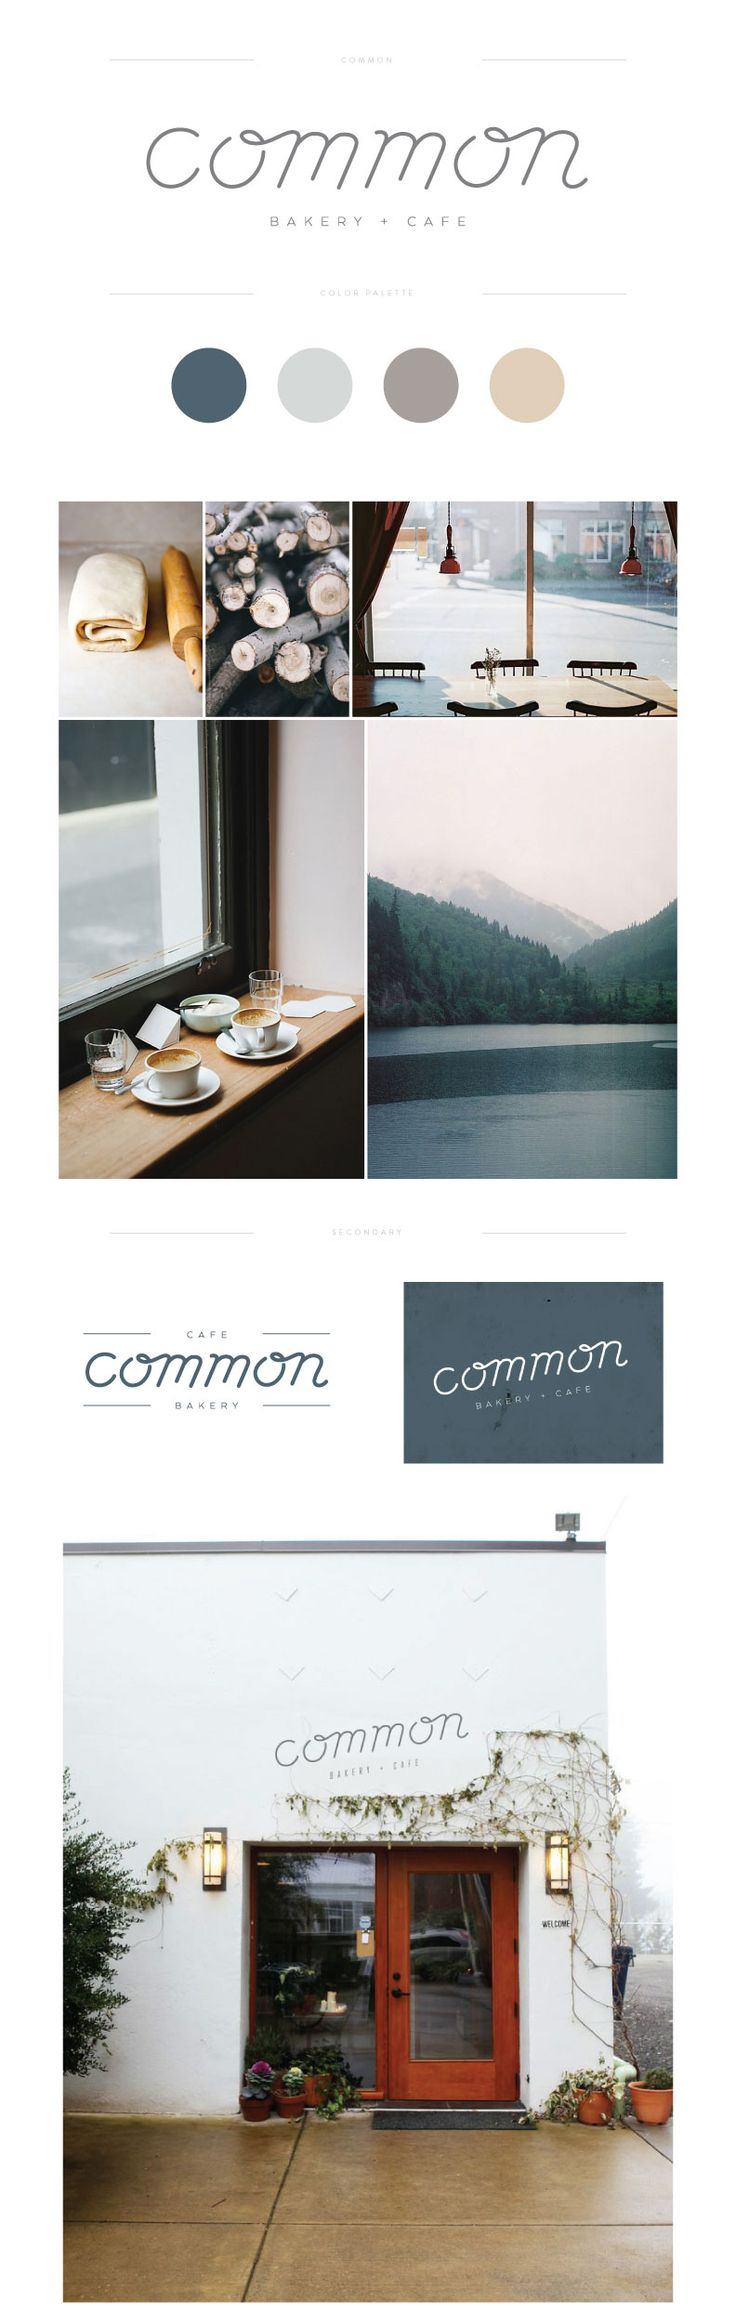 COMMON CAFE + BAKERY / Lauren Ledbetter Design & Styling